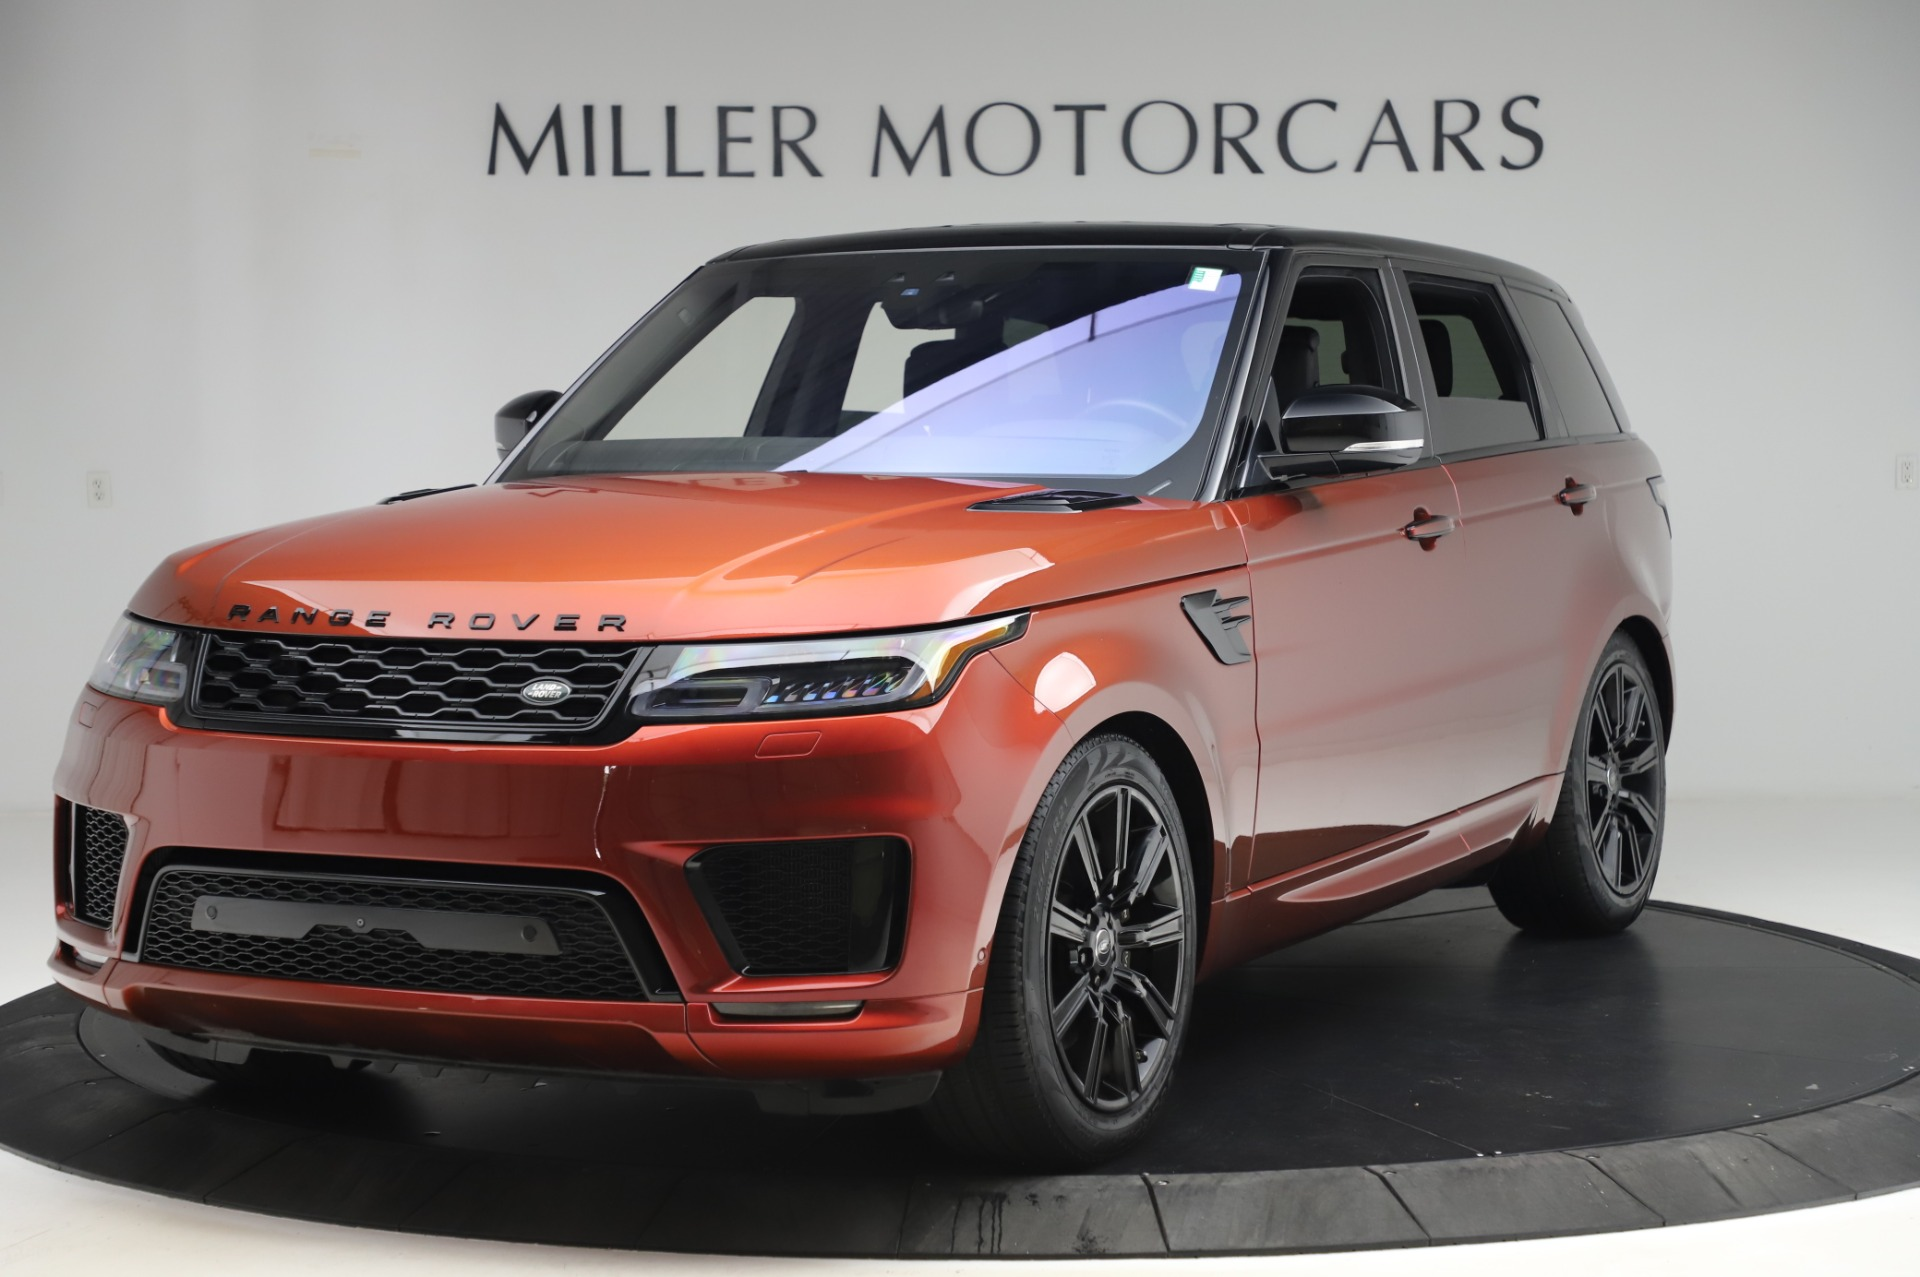 Used 2019 Land Rover Range Rover Sport Autobiography for sale Sold at Bentley Greenwich in Greenwich CT 06830 1